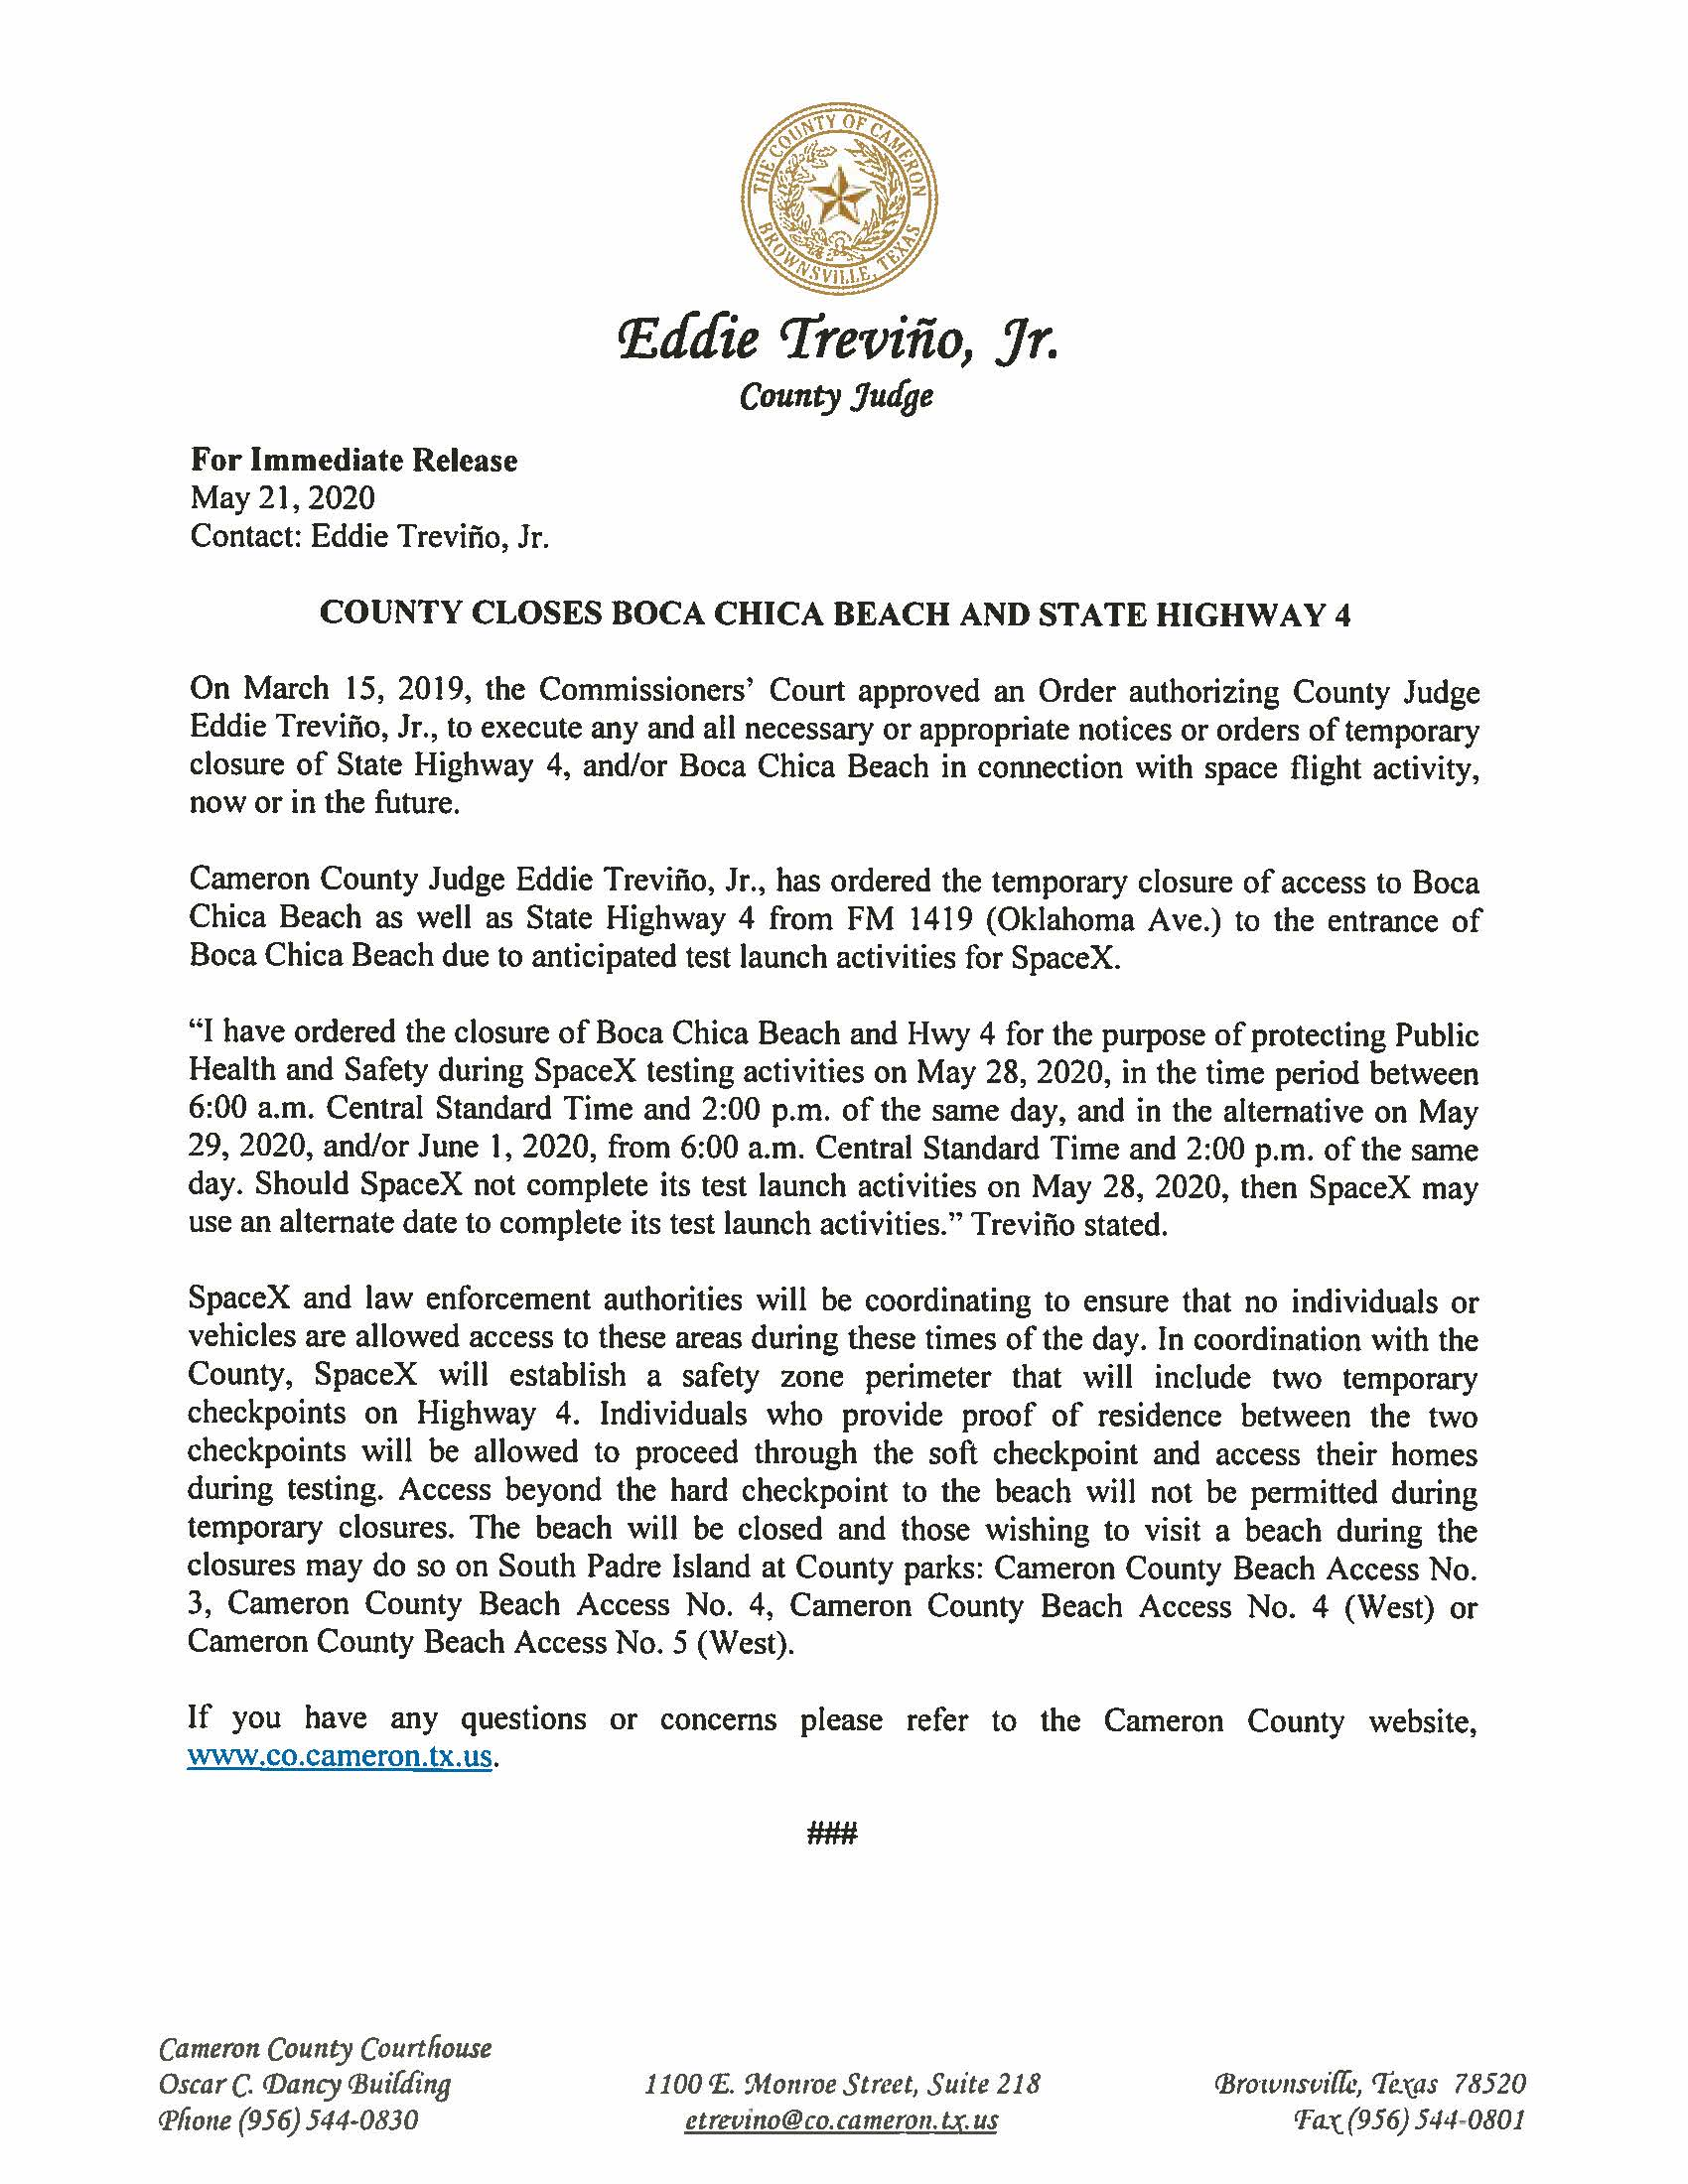 05.21.2020 For Immediate Release County Closes Boca Chica Beach And State Highway 4